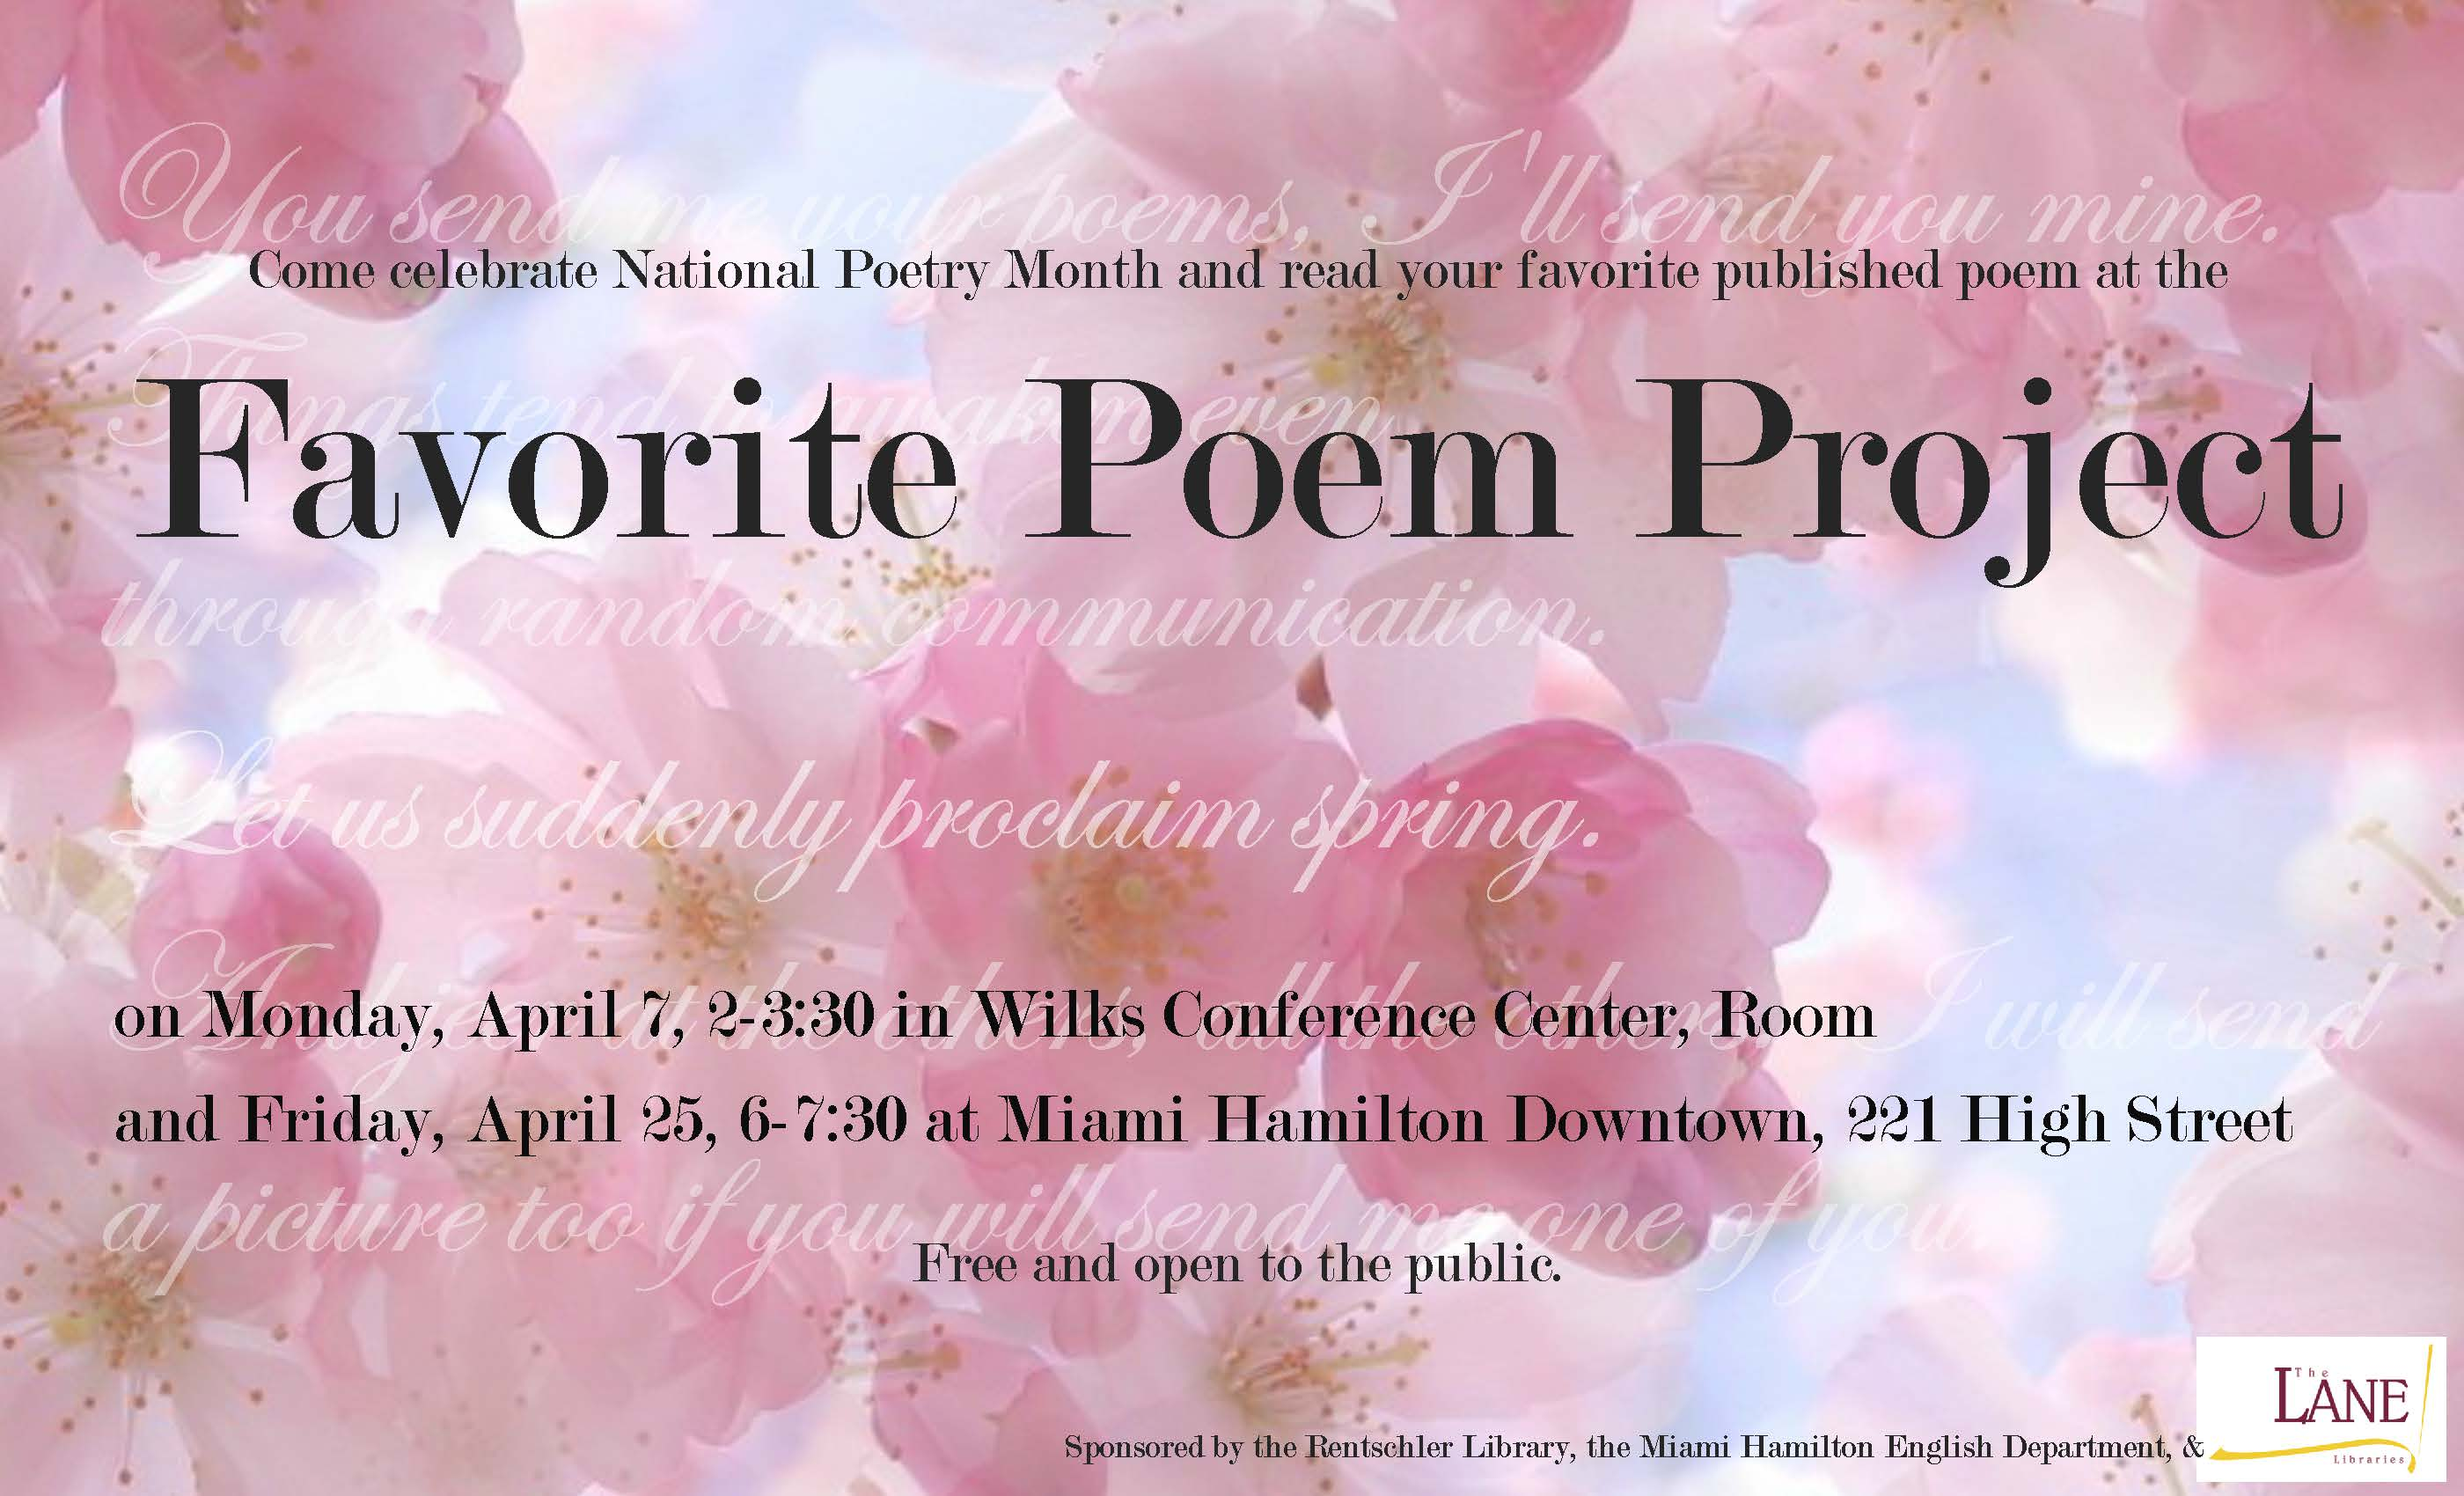 favorite poem project Mizzou favorite poems project featuring posts by alumni, faculty, and friends of the university of missouri department of english.